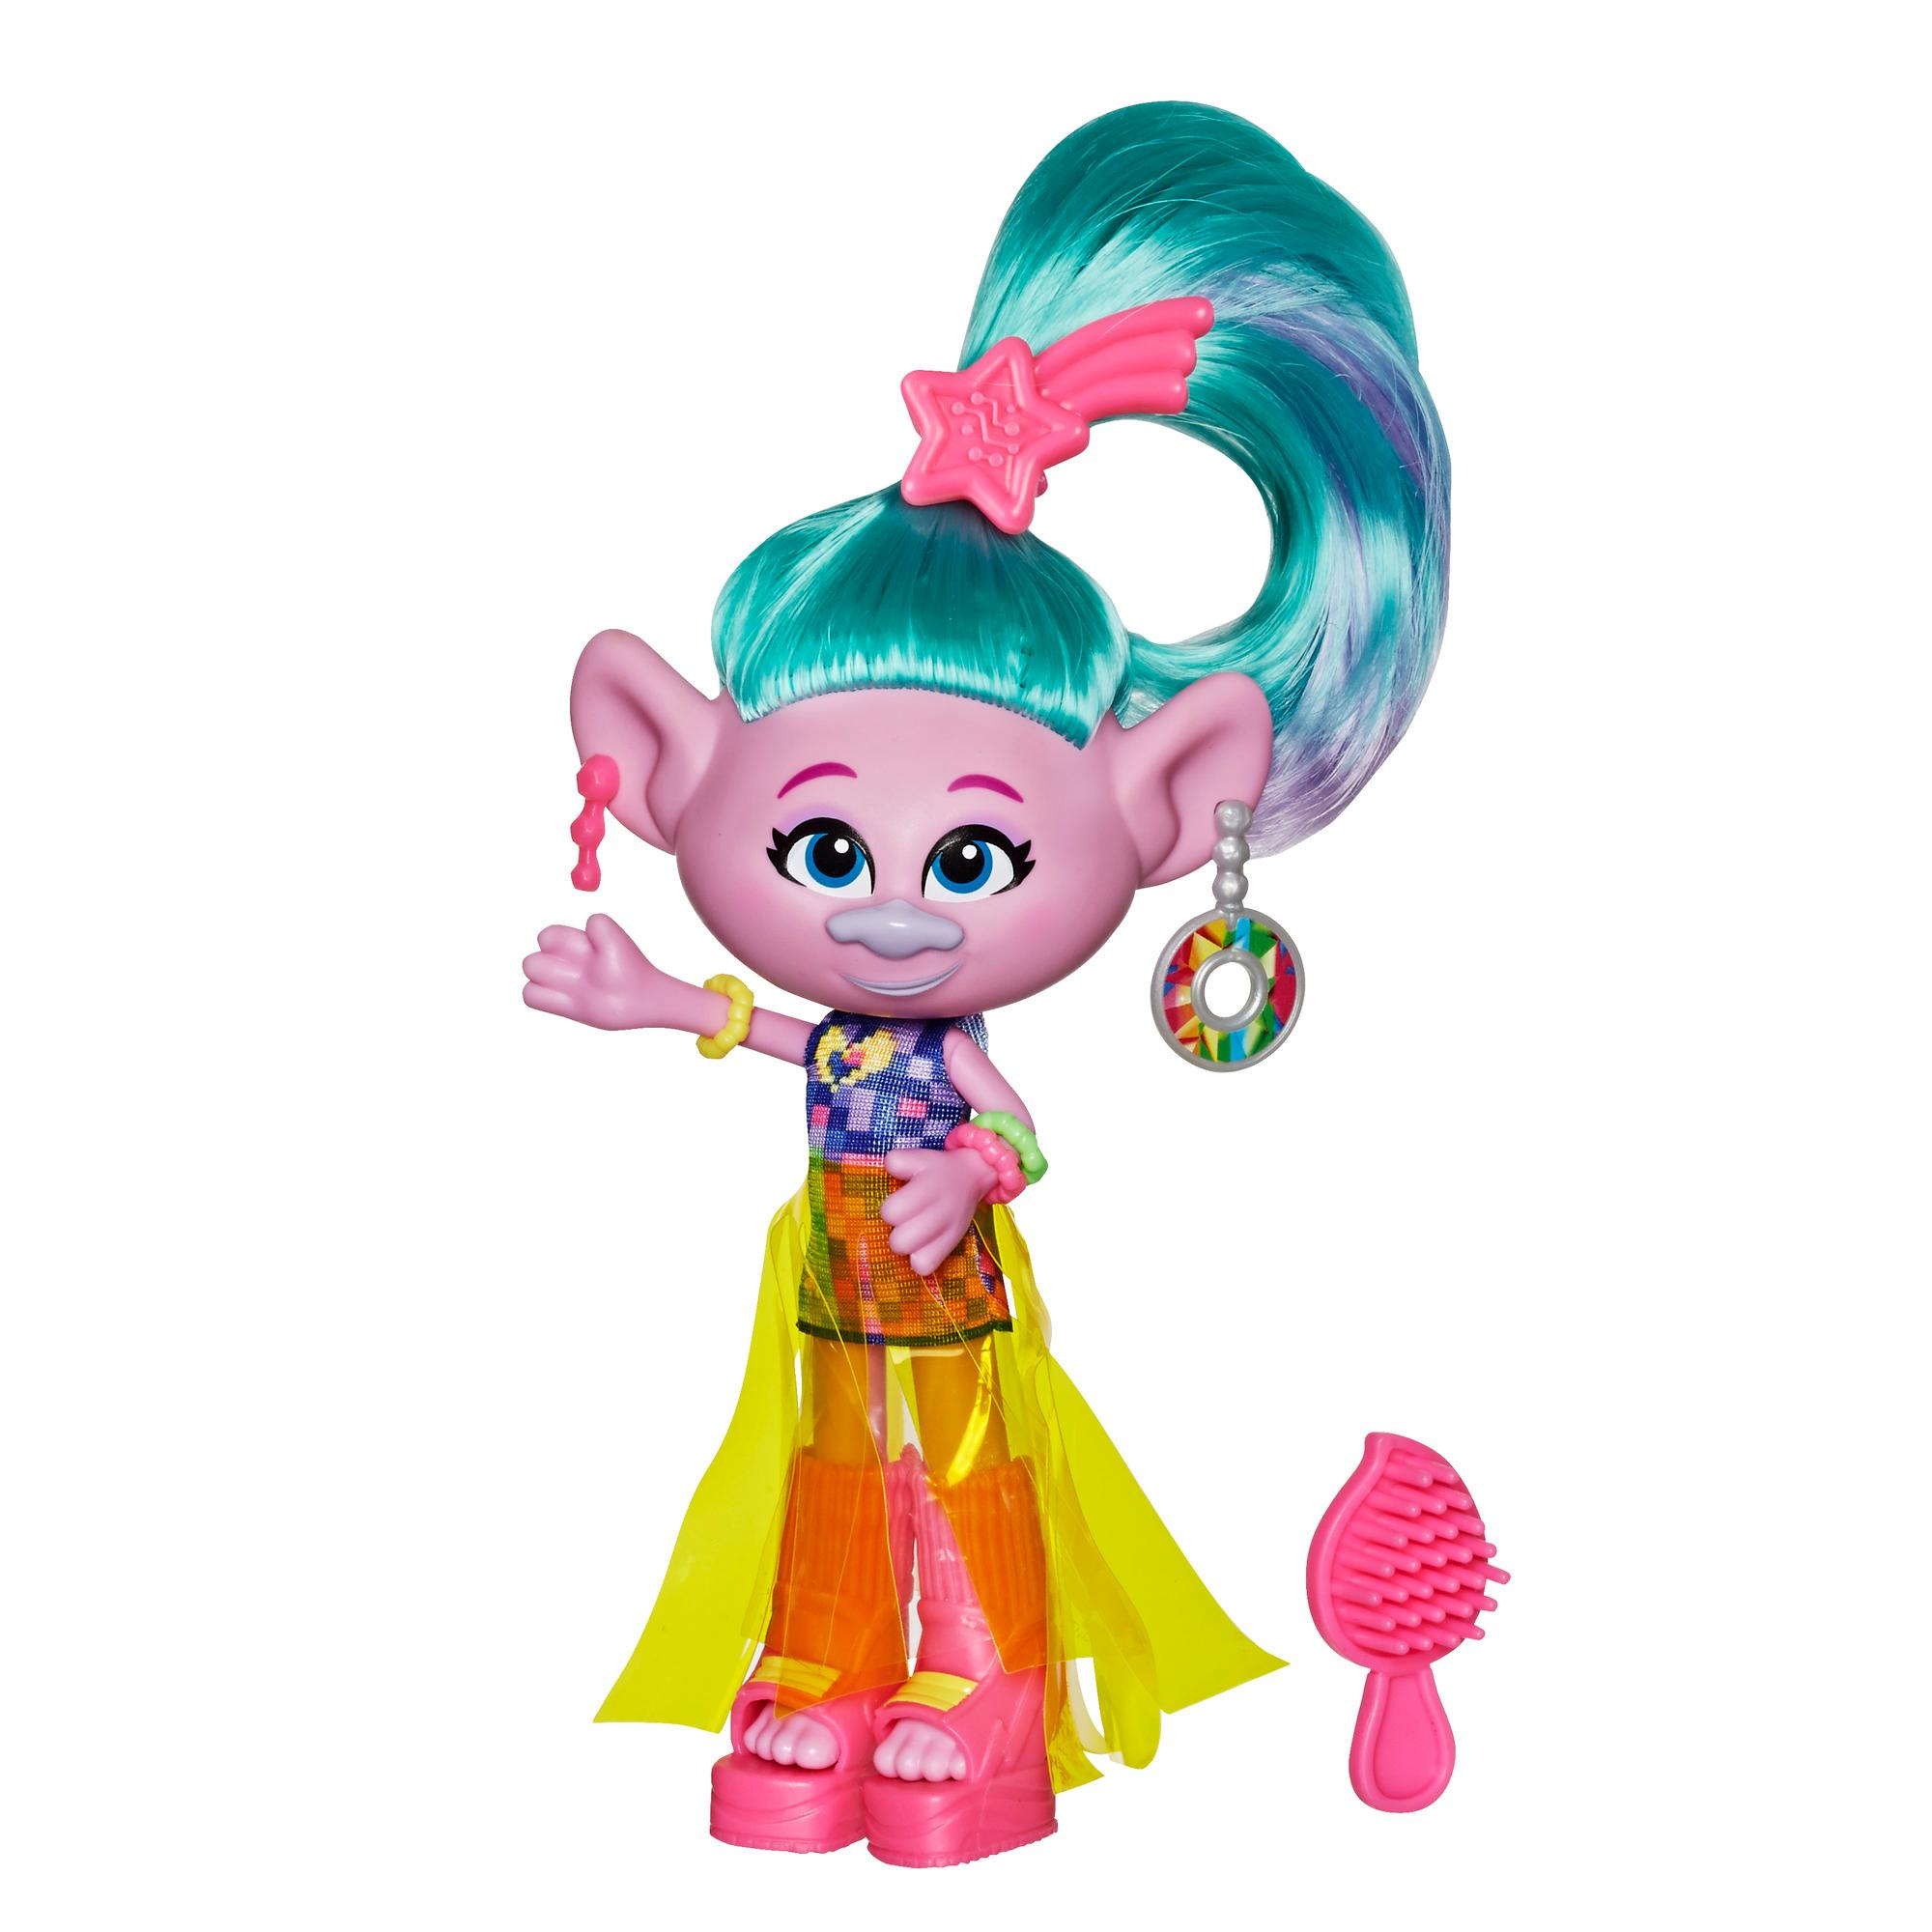 DreamWorks Trolls Glamour Satin Fashion Puppe